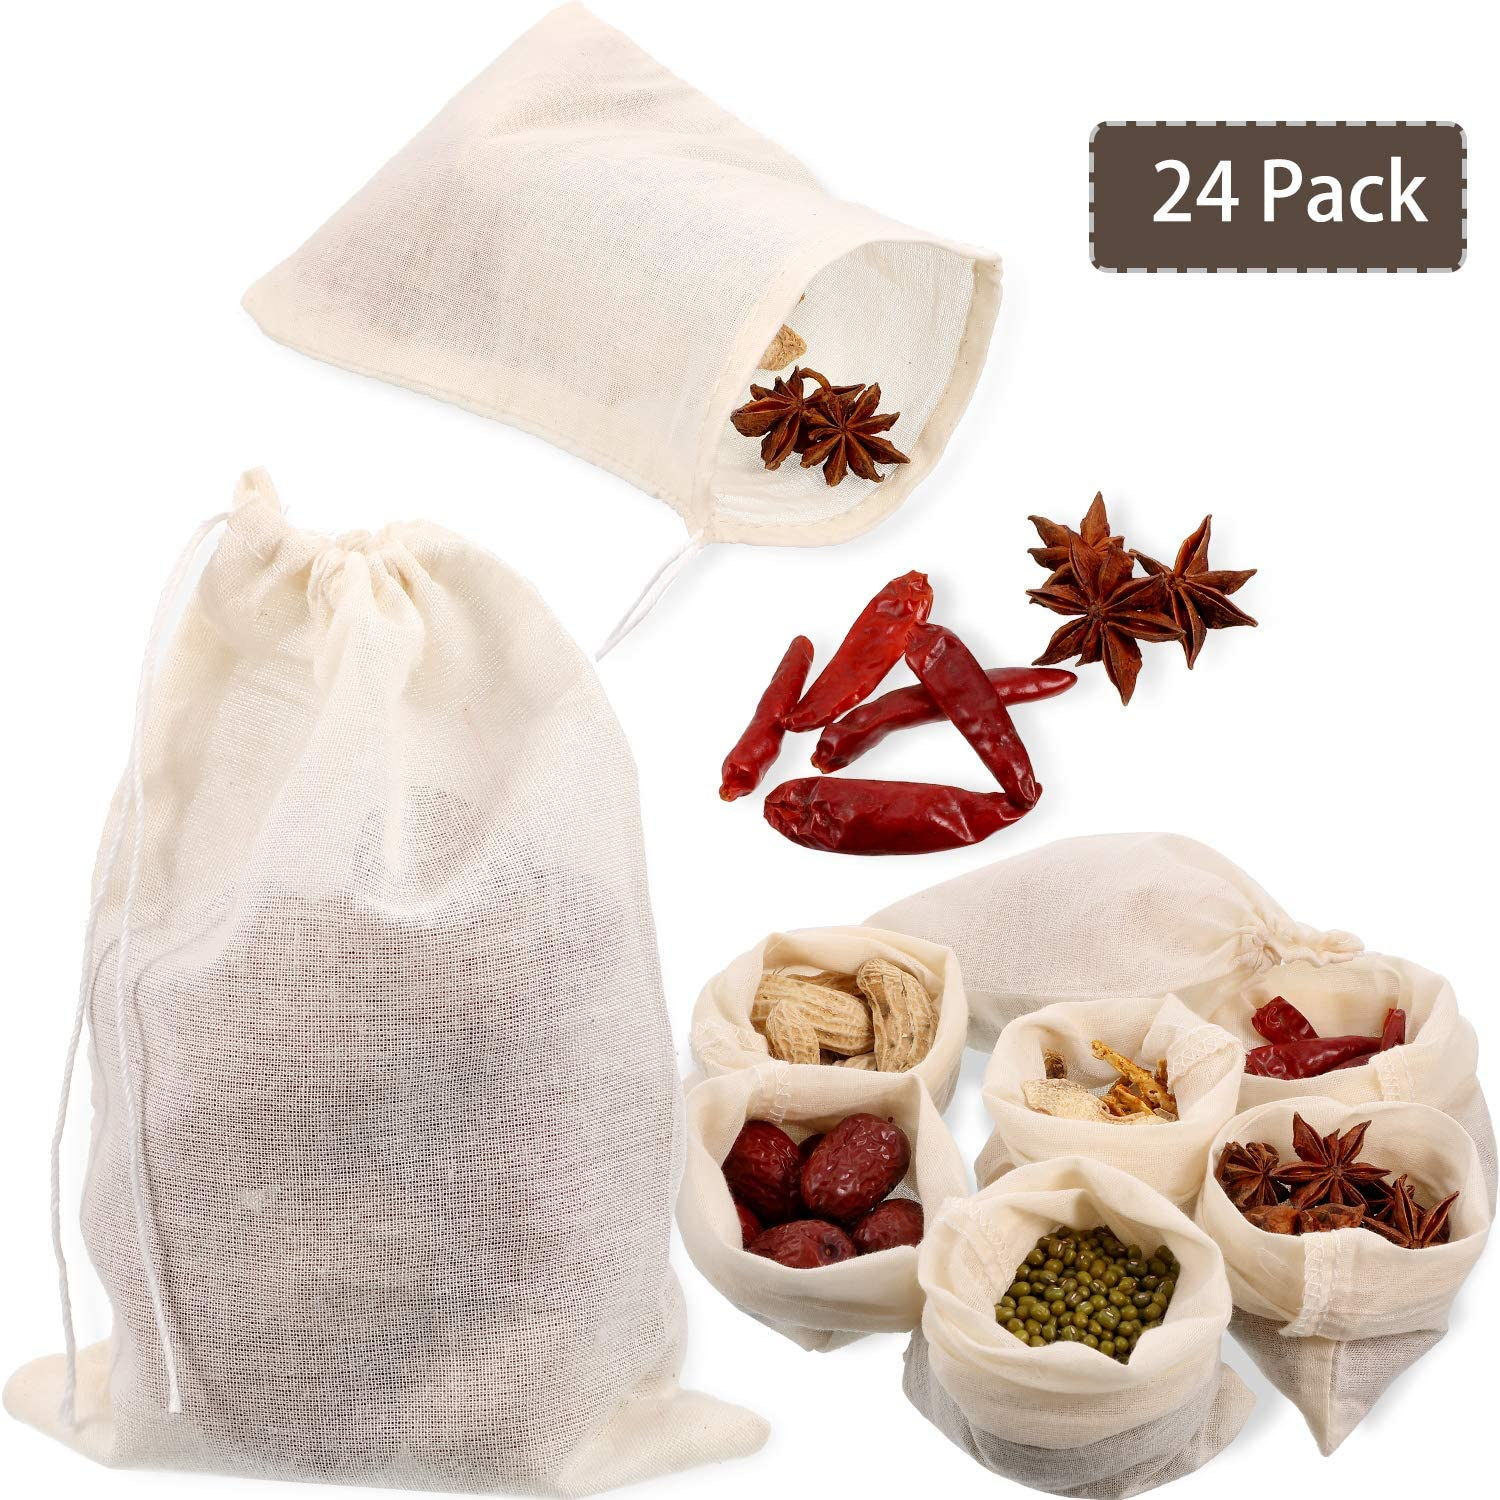 24 Pieces Reusable Drawstring Cotton Soup Bags, Muslin Bag, Straining Cheesecloth Bags Soup Gravy Broth Brew Stew Bags for Coffee Tea Bone Broth(4 x 6 Inch)